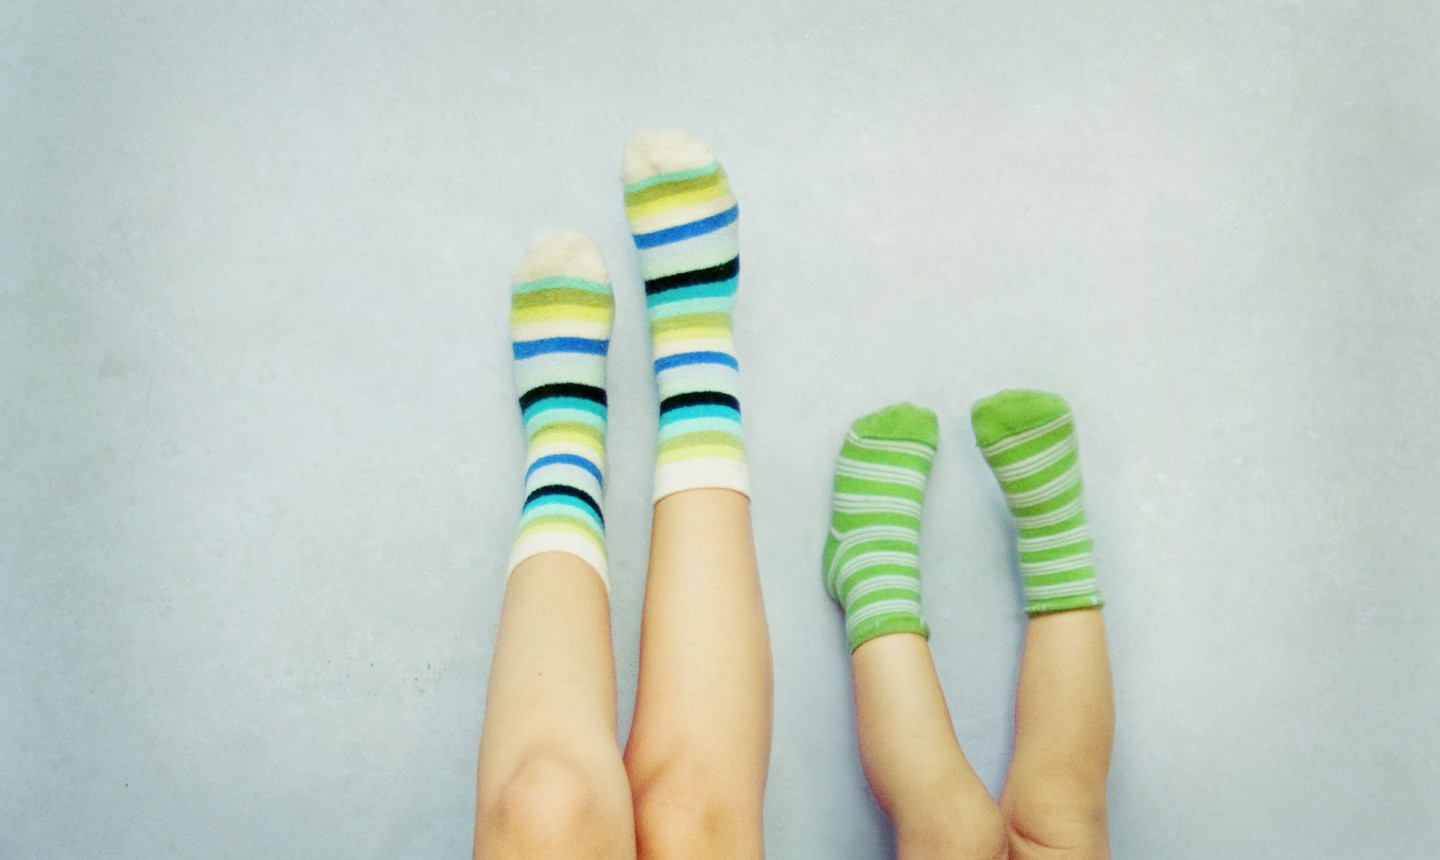 wearing socks